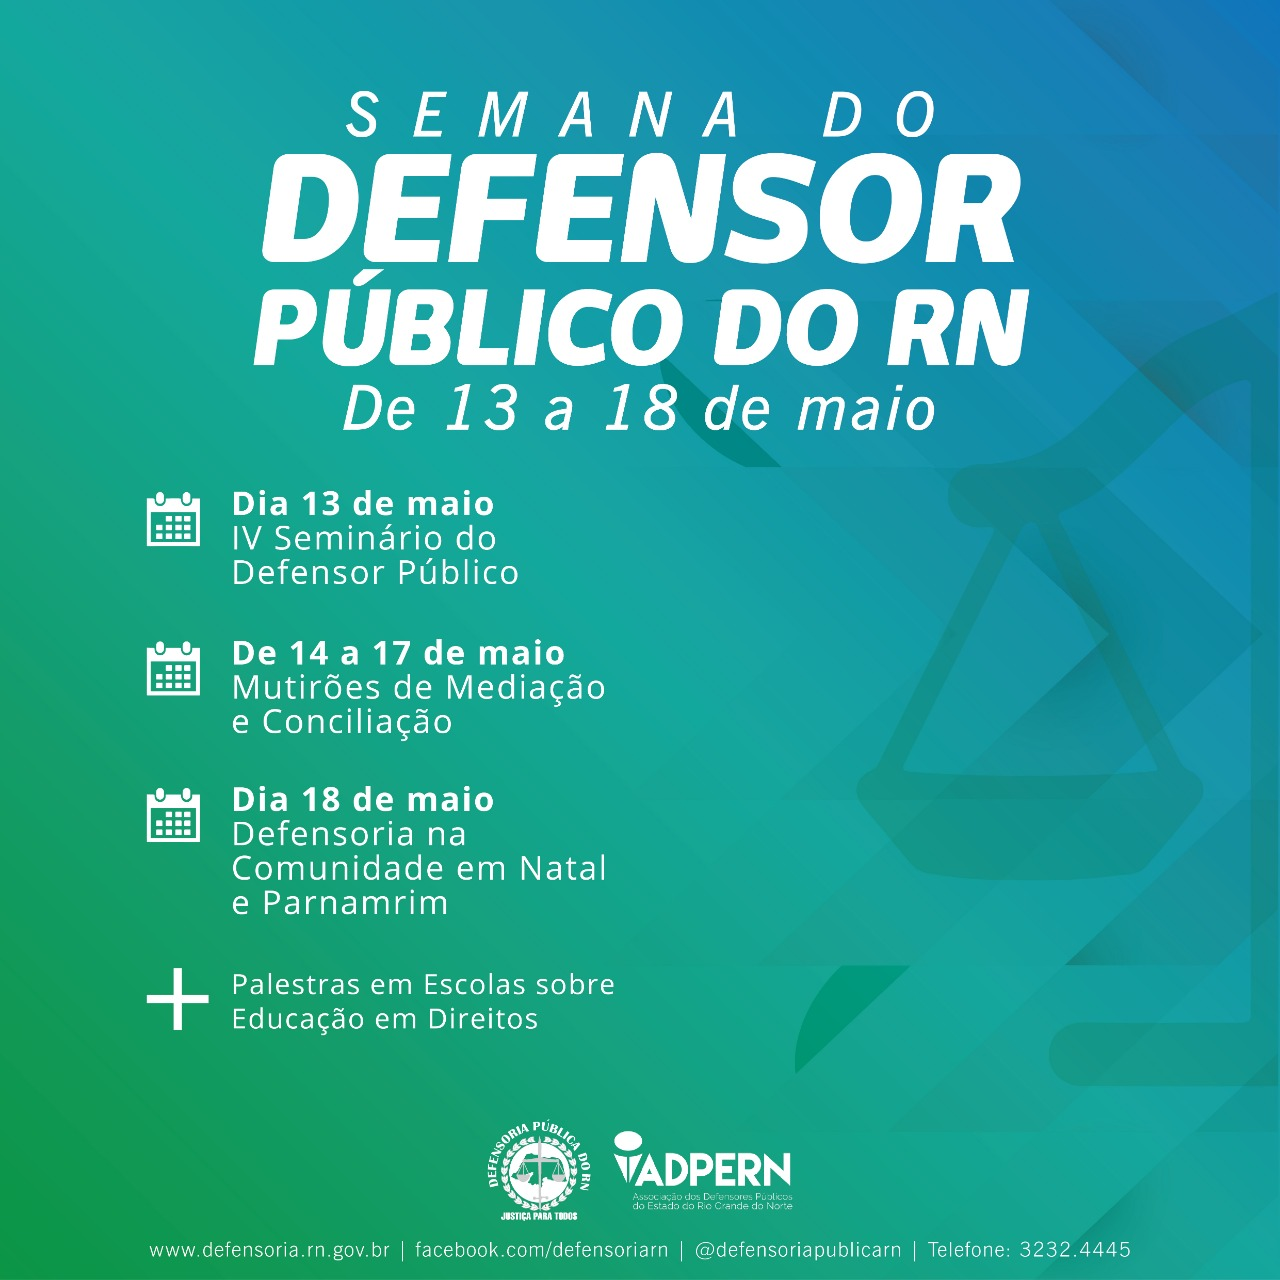 Defensoria Pública do RN divulga programação da Semana do Defensor Público 2019